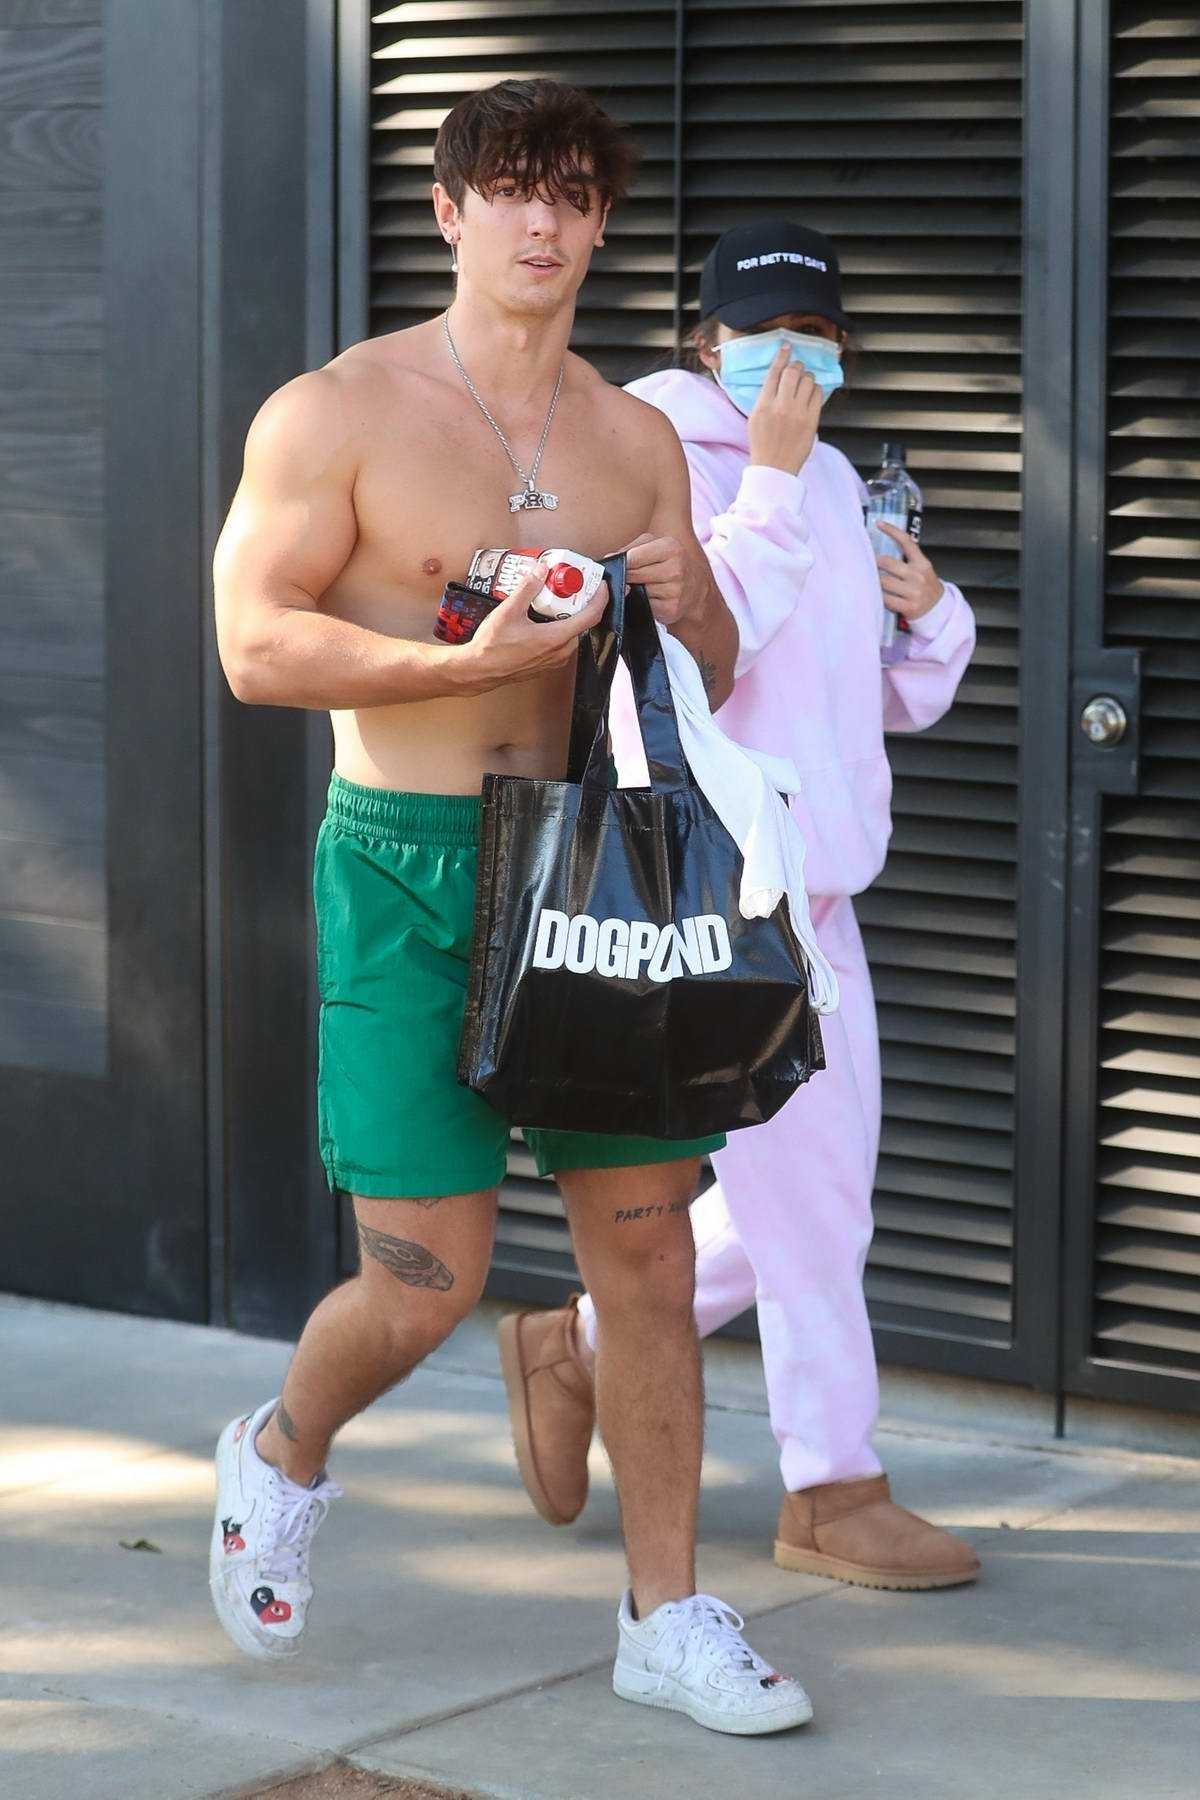 Addison Rae and Bryce Hall wrap up a workout session at Dogpound in West Hollywood, California